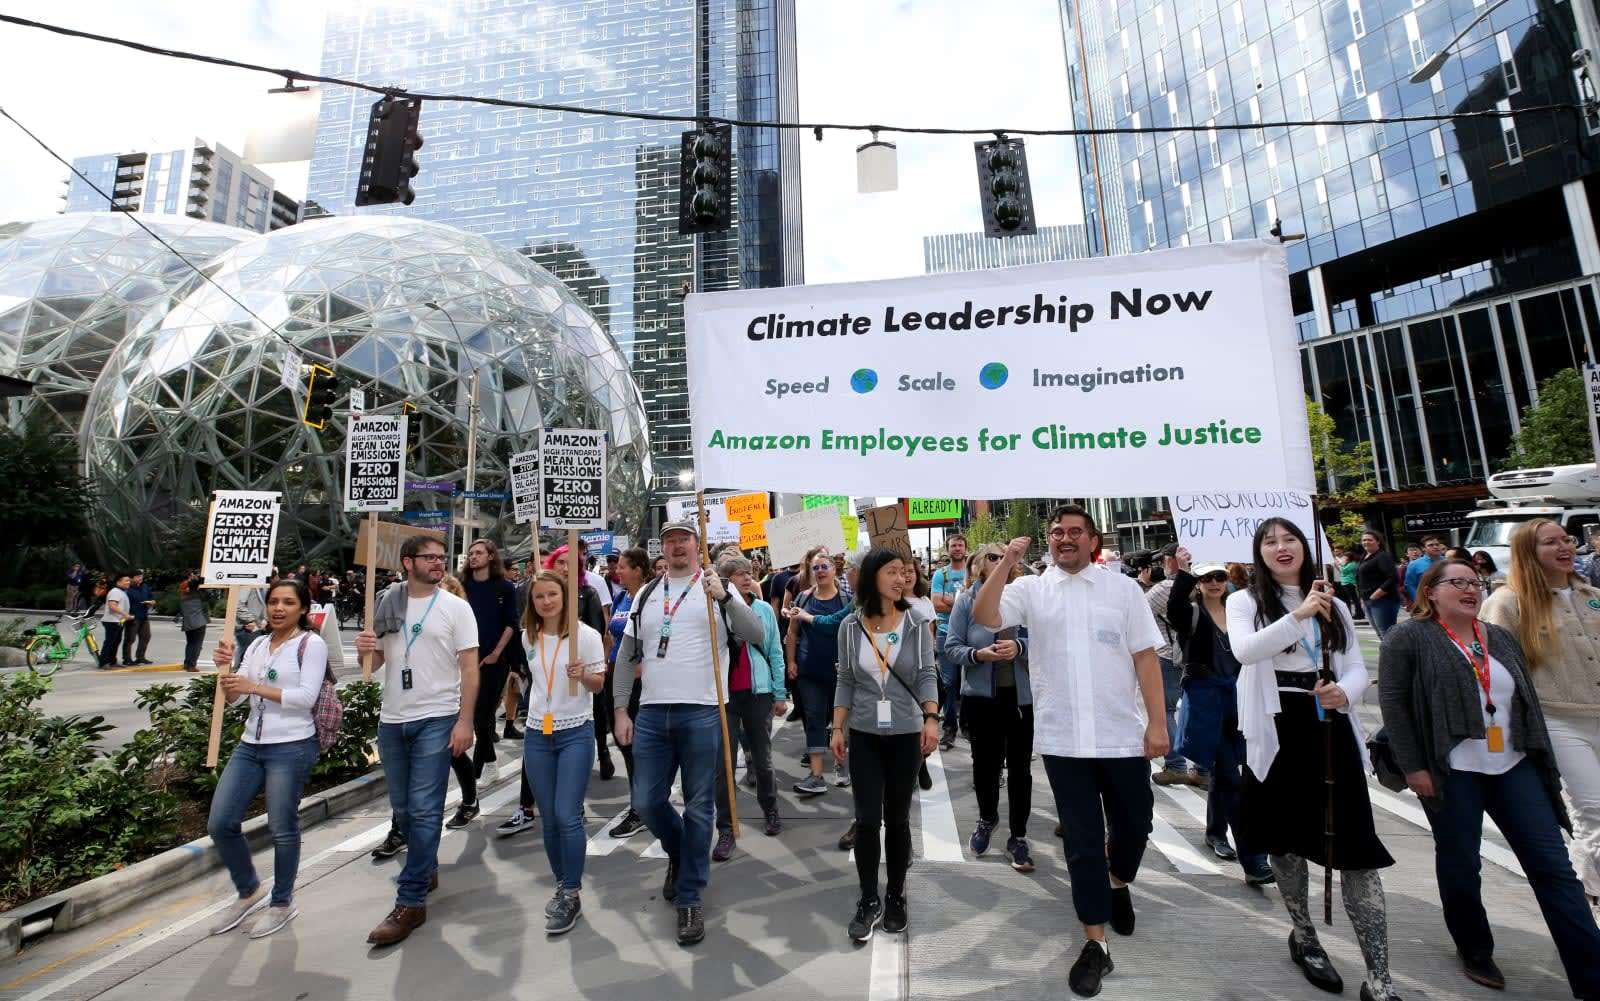 Amazon workers risk their jobs to attack the company over climate policies